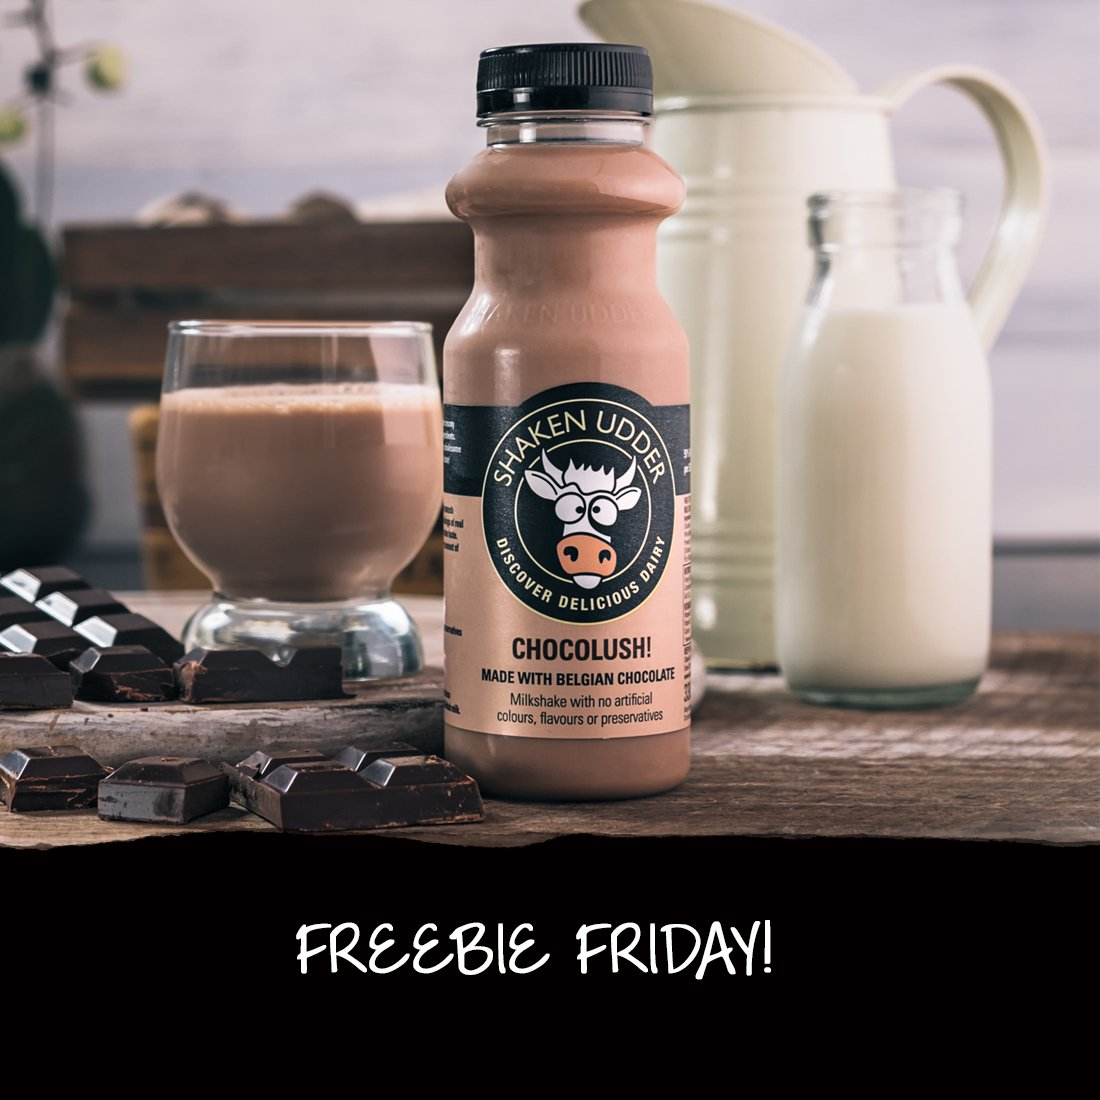 Our favourite day of the week is BACK! To celebrate our love for #Friday's we're hosting a #FreebieFriday #giveaway. All you have to do to get yourself a bundle of tasty Chocolush shakes is like, share & comment on this post with who you'd share it with. READY, SET, GO! Good Luck<br>http://pic.twitter.com/AmNPuD0lsM